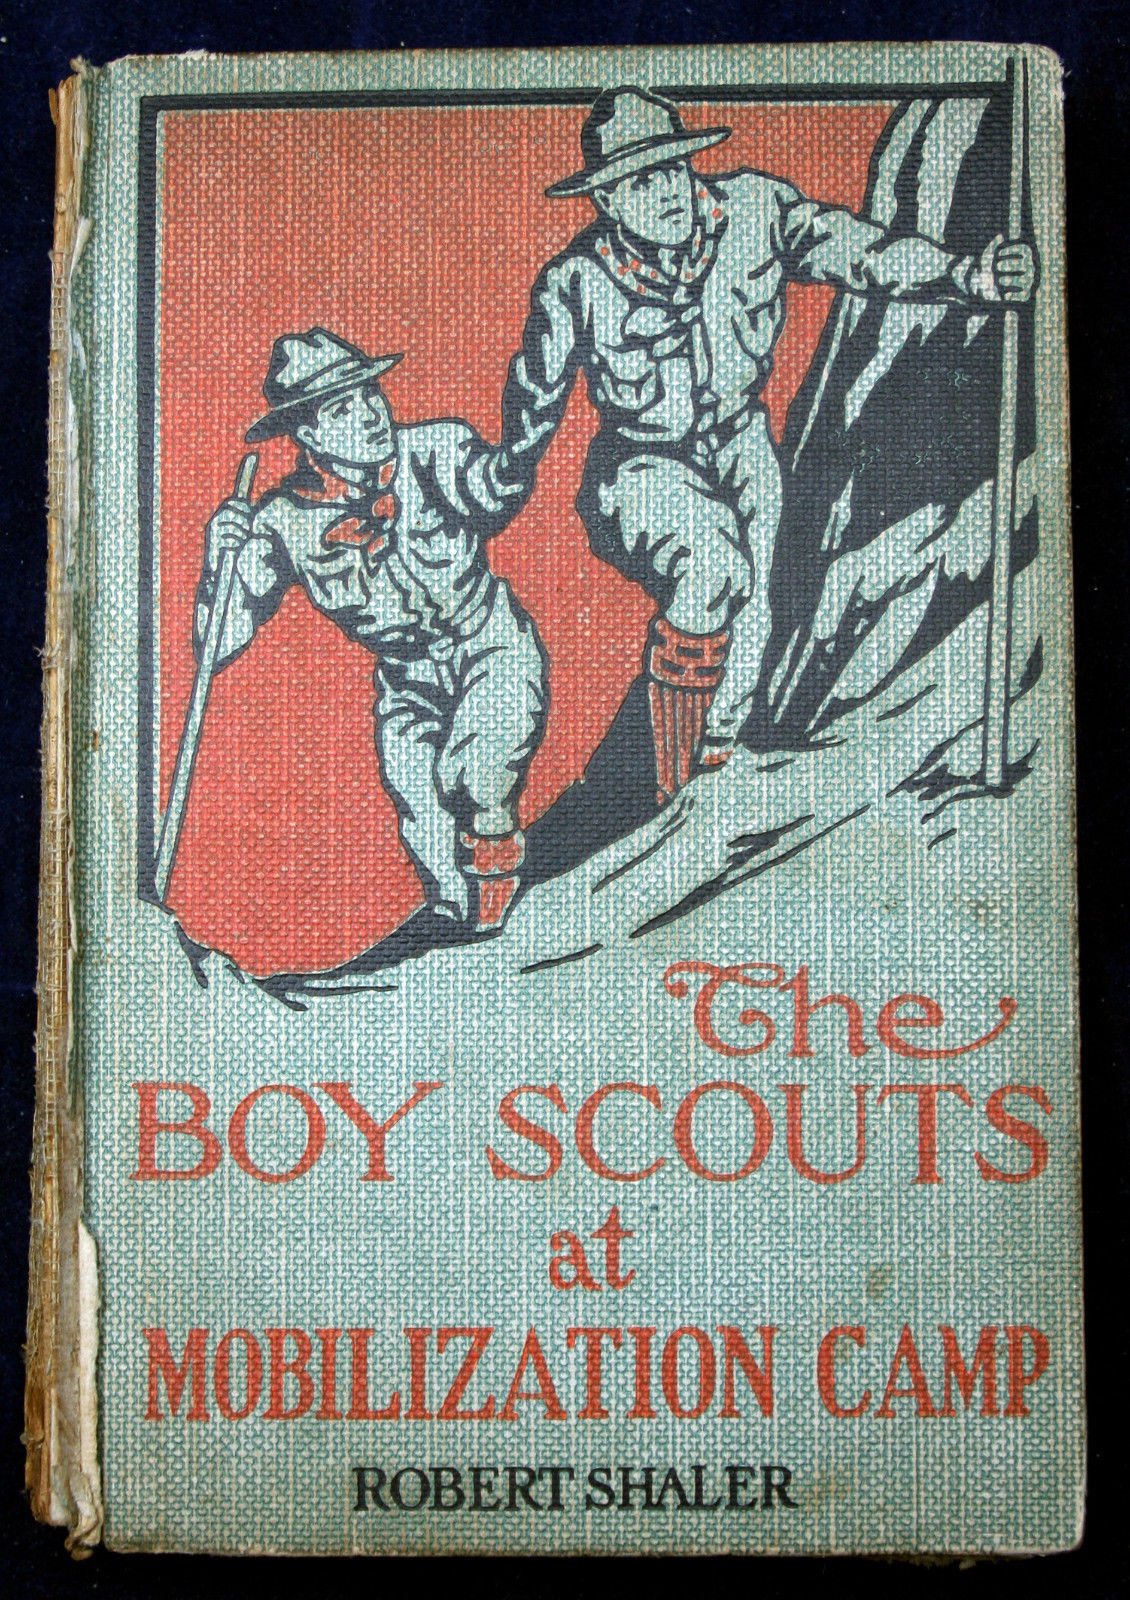 Primary image for THE BOY SCOUTS at MOBILIZATION CAMP Robert Shaler FE1914 extremely scarce